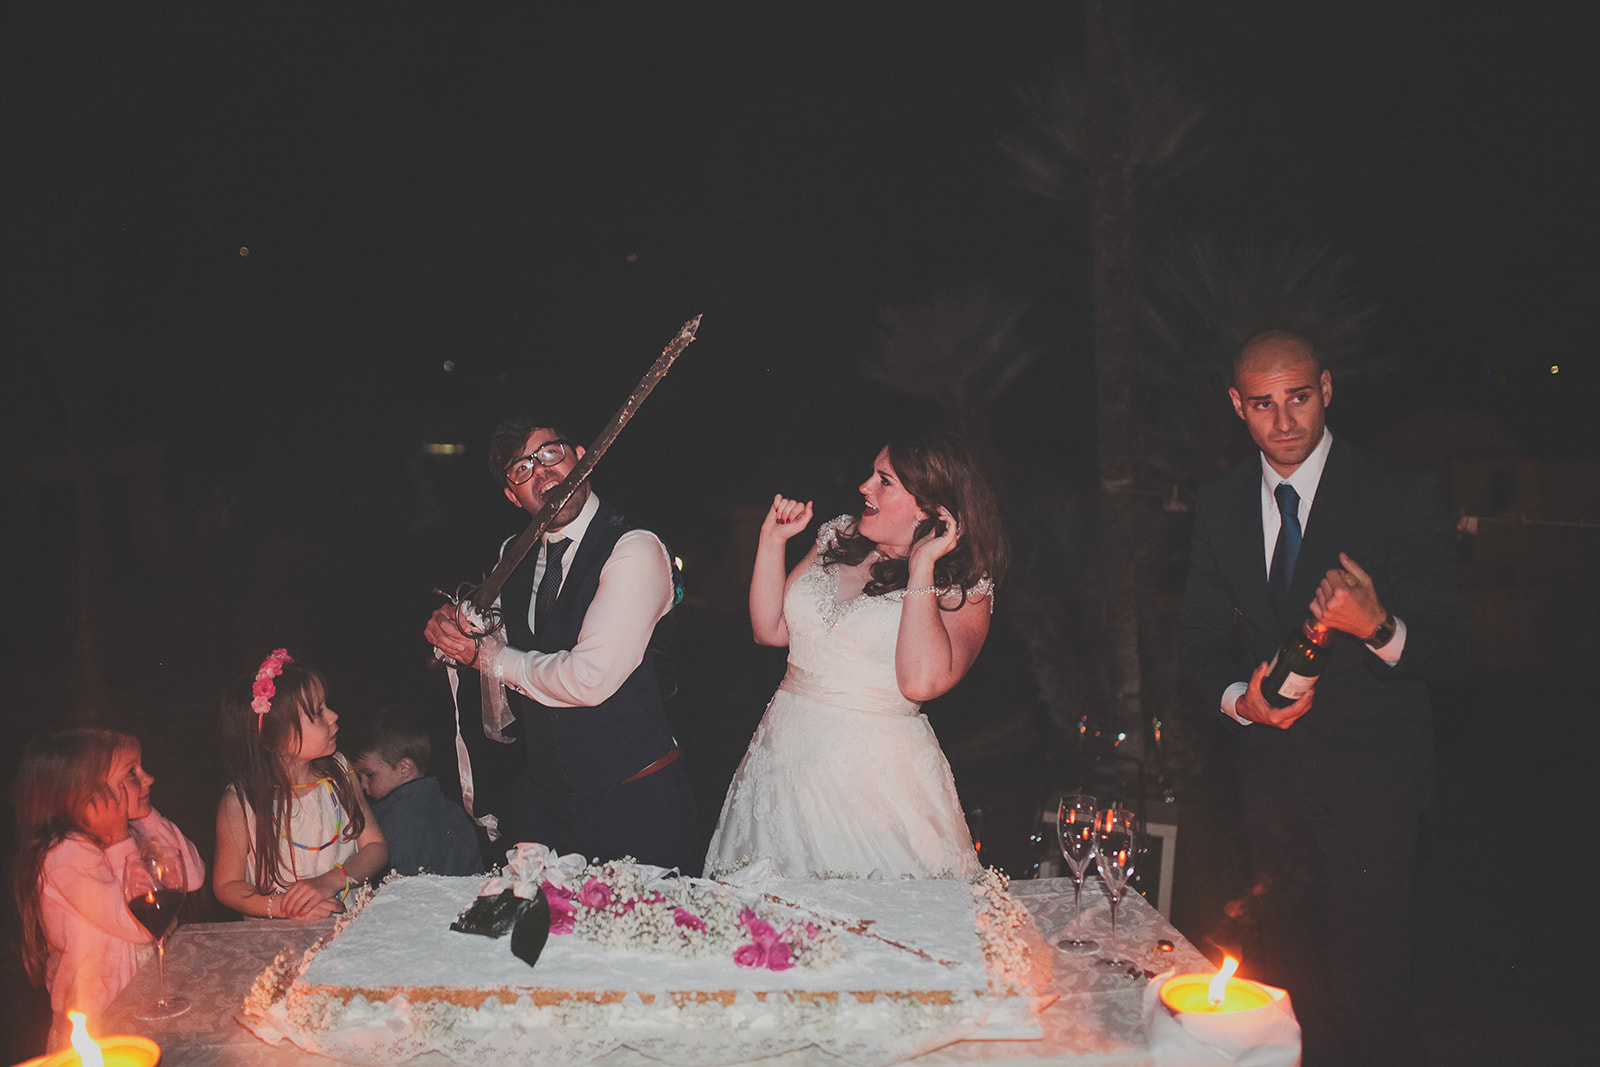 a bride and groom cut their wedding cake with a sword. destination creative wedding photography italy. stop motion wedding films uk